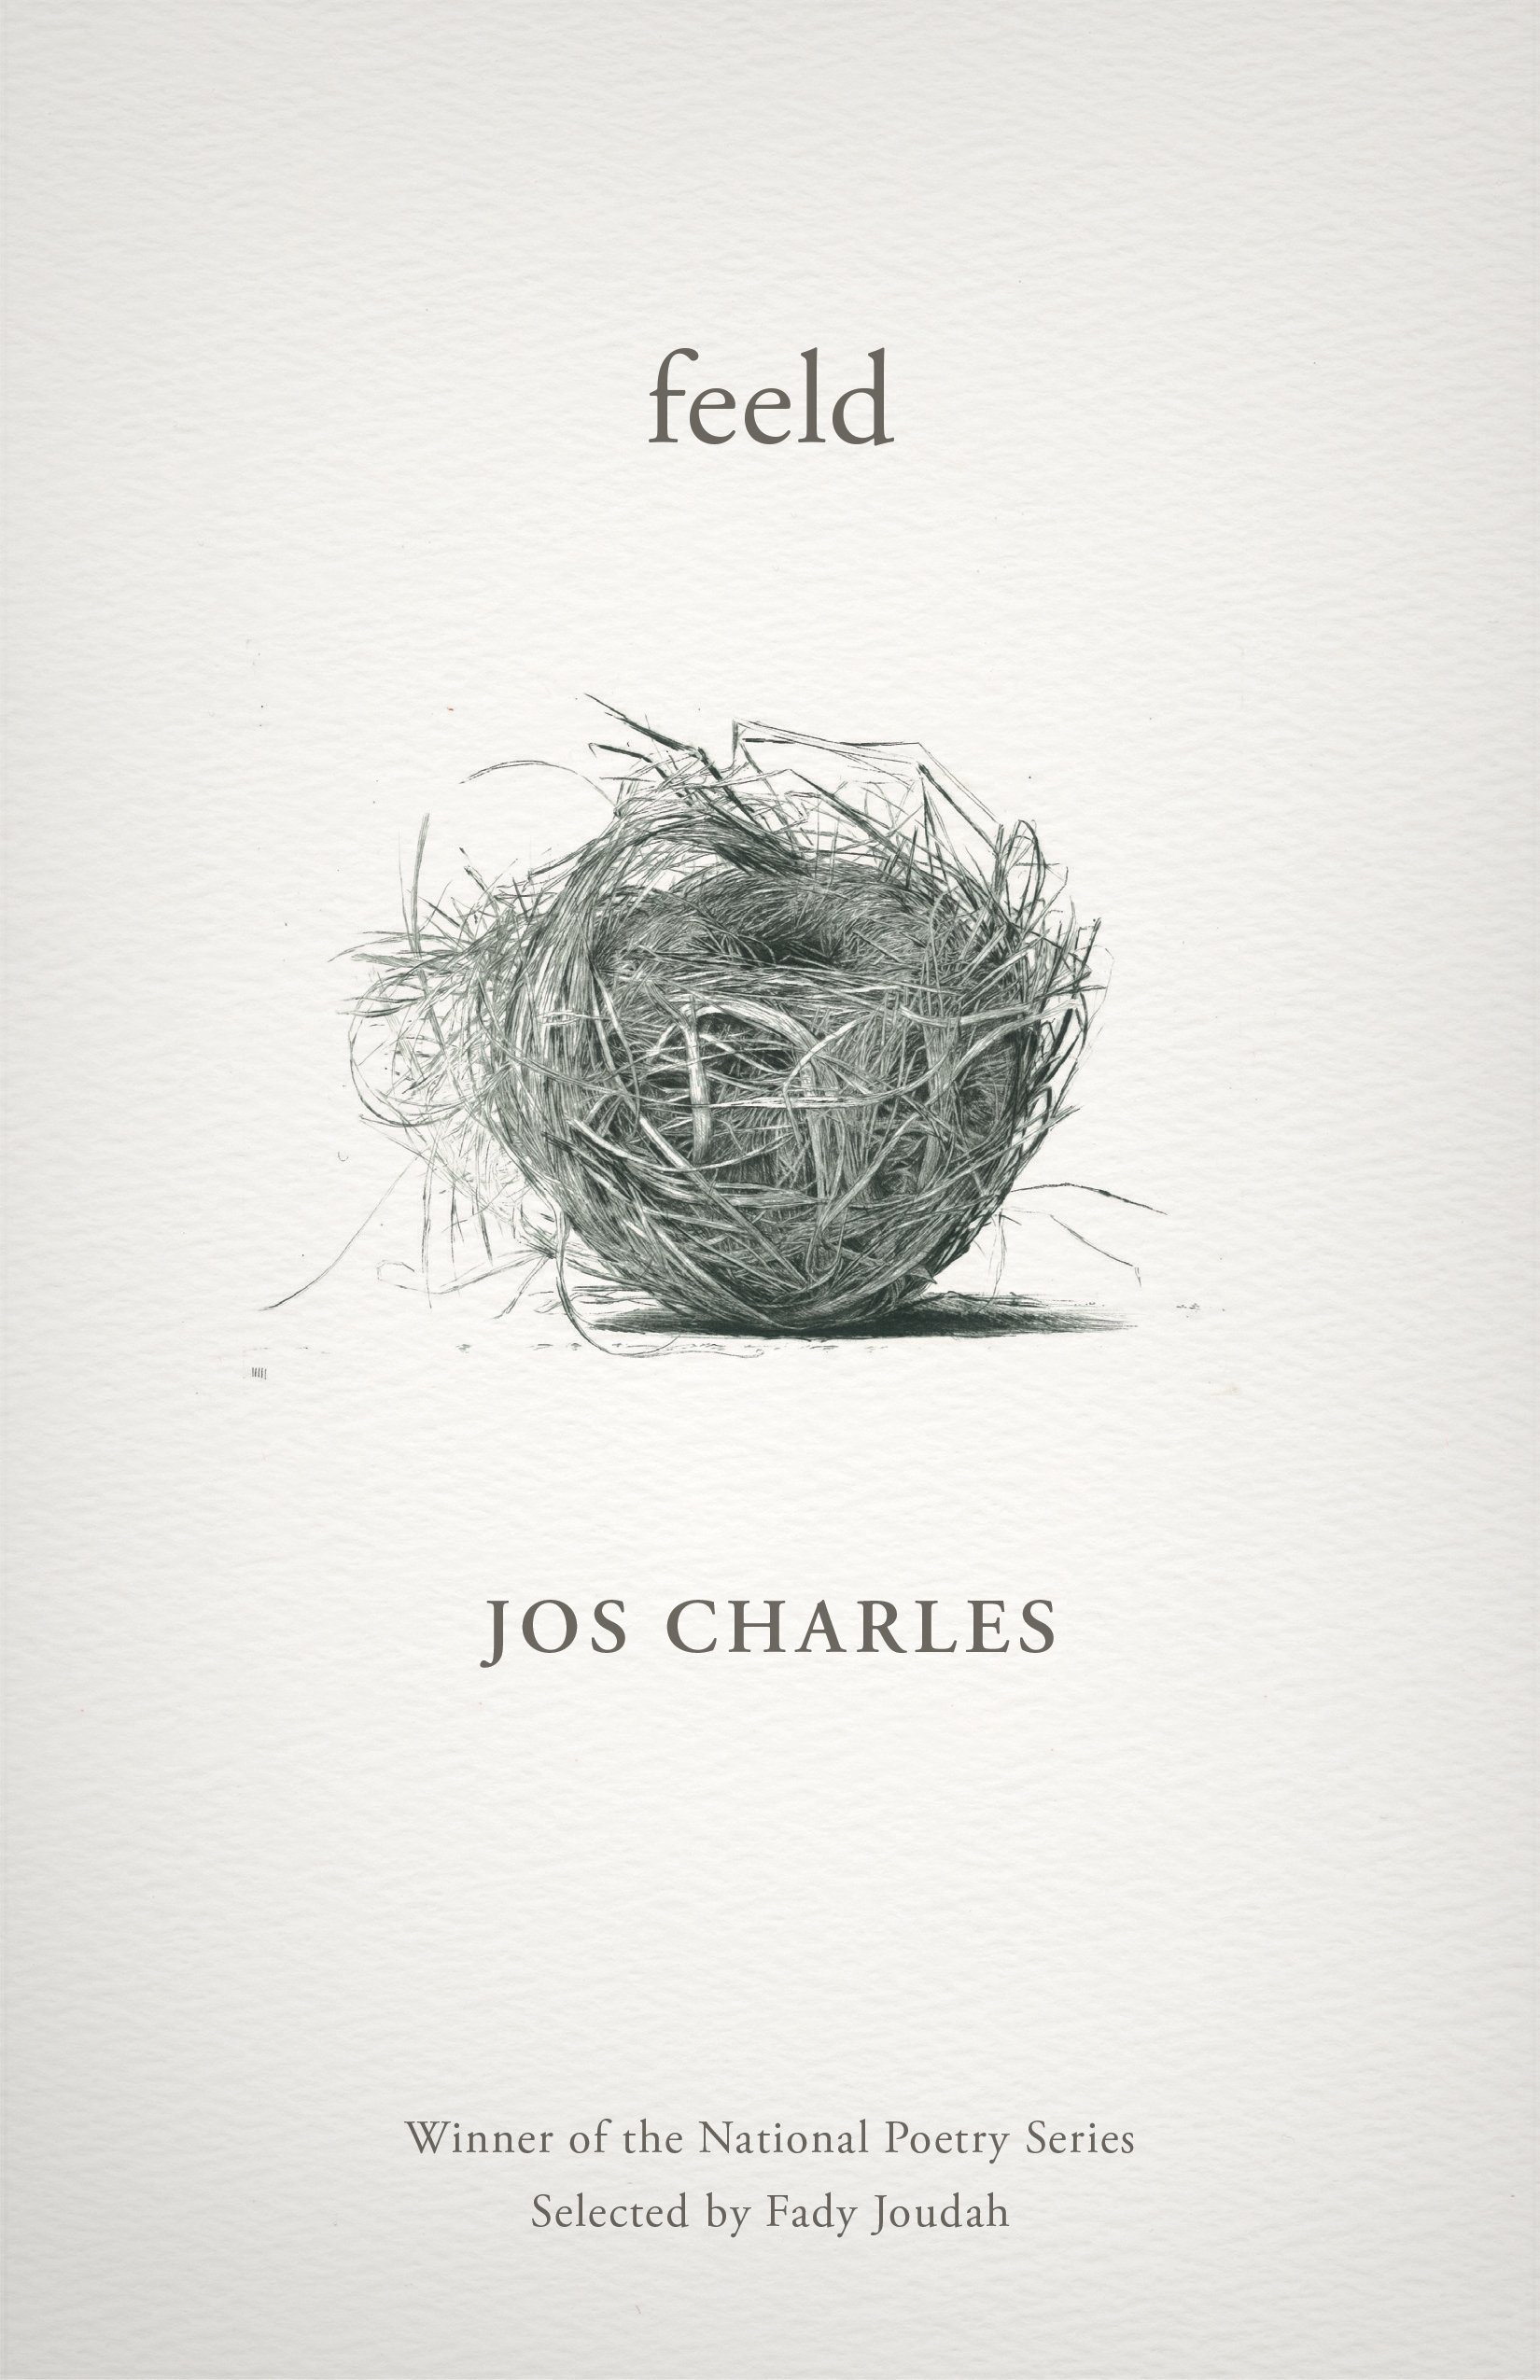 Image result for jos charles feeld